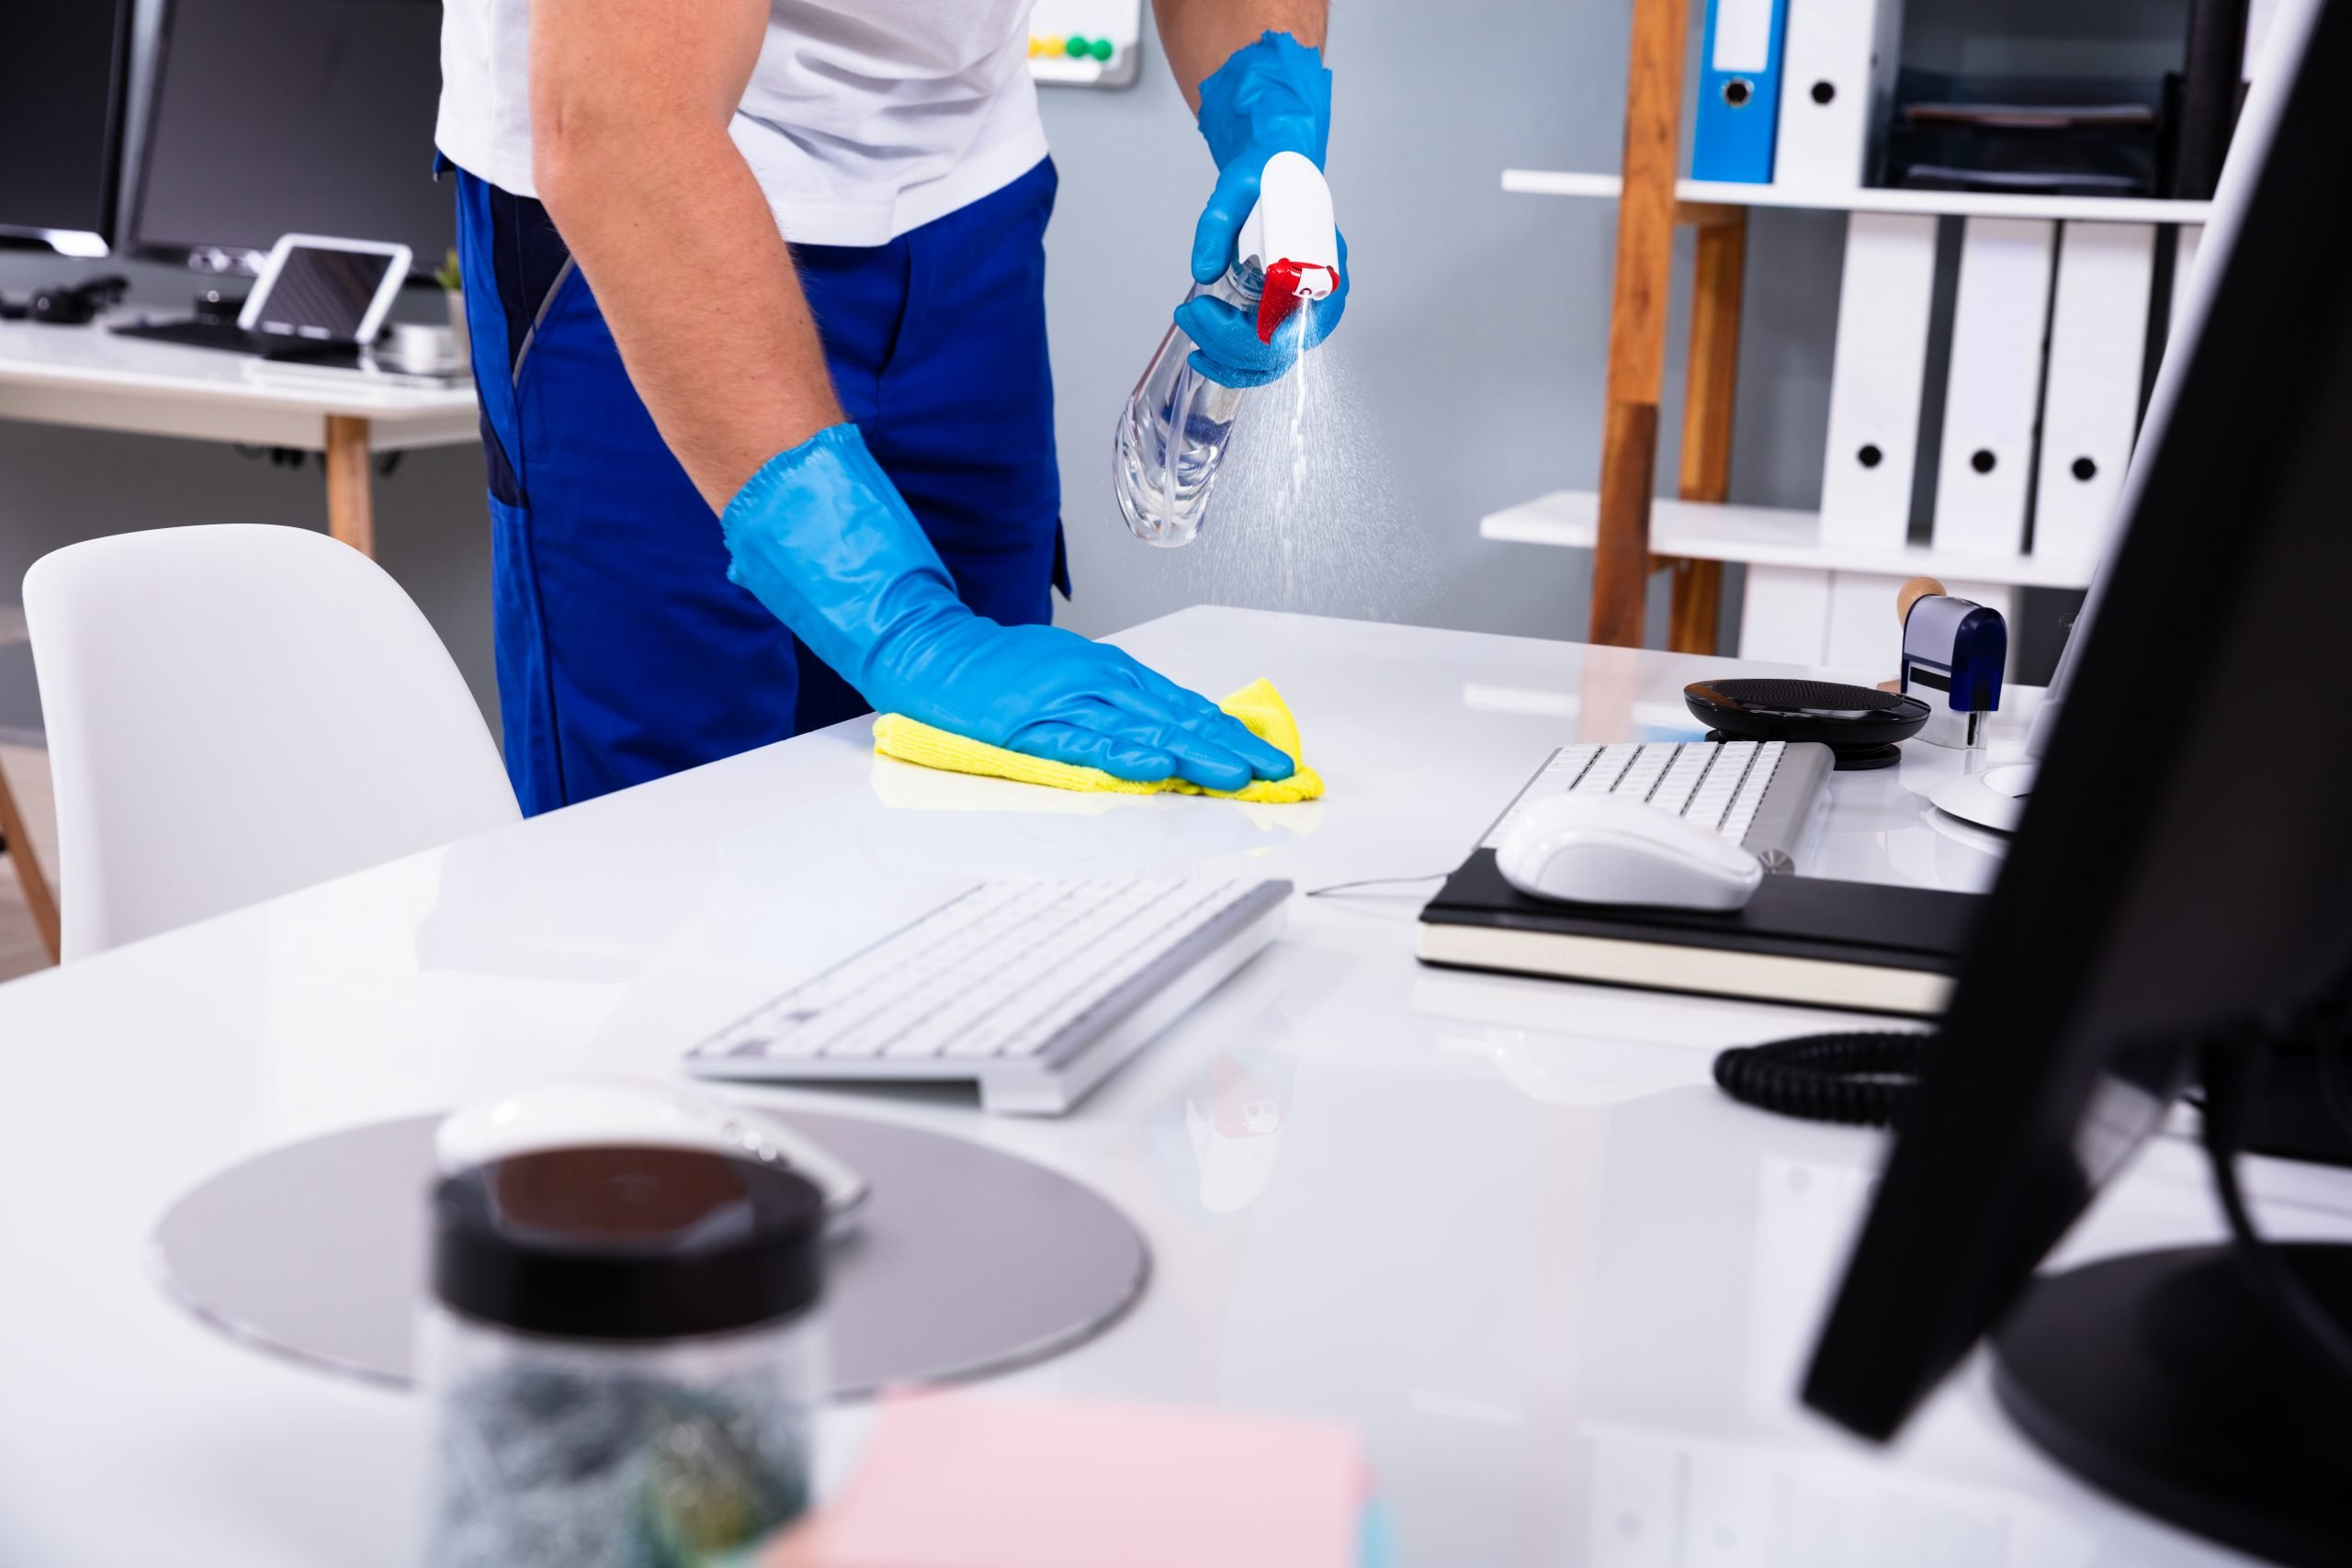 Image of cleaner wearing disposable gloves spraying an office desk.